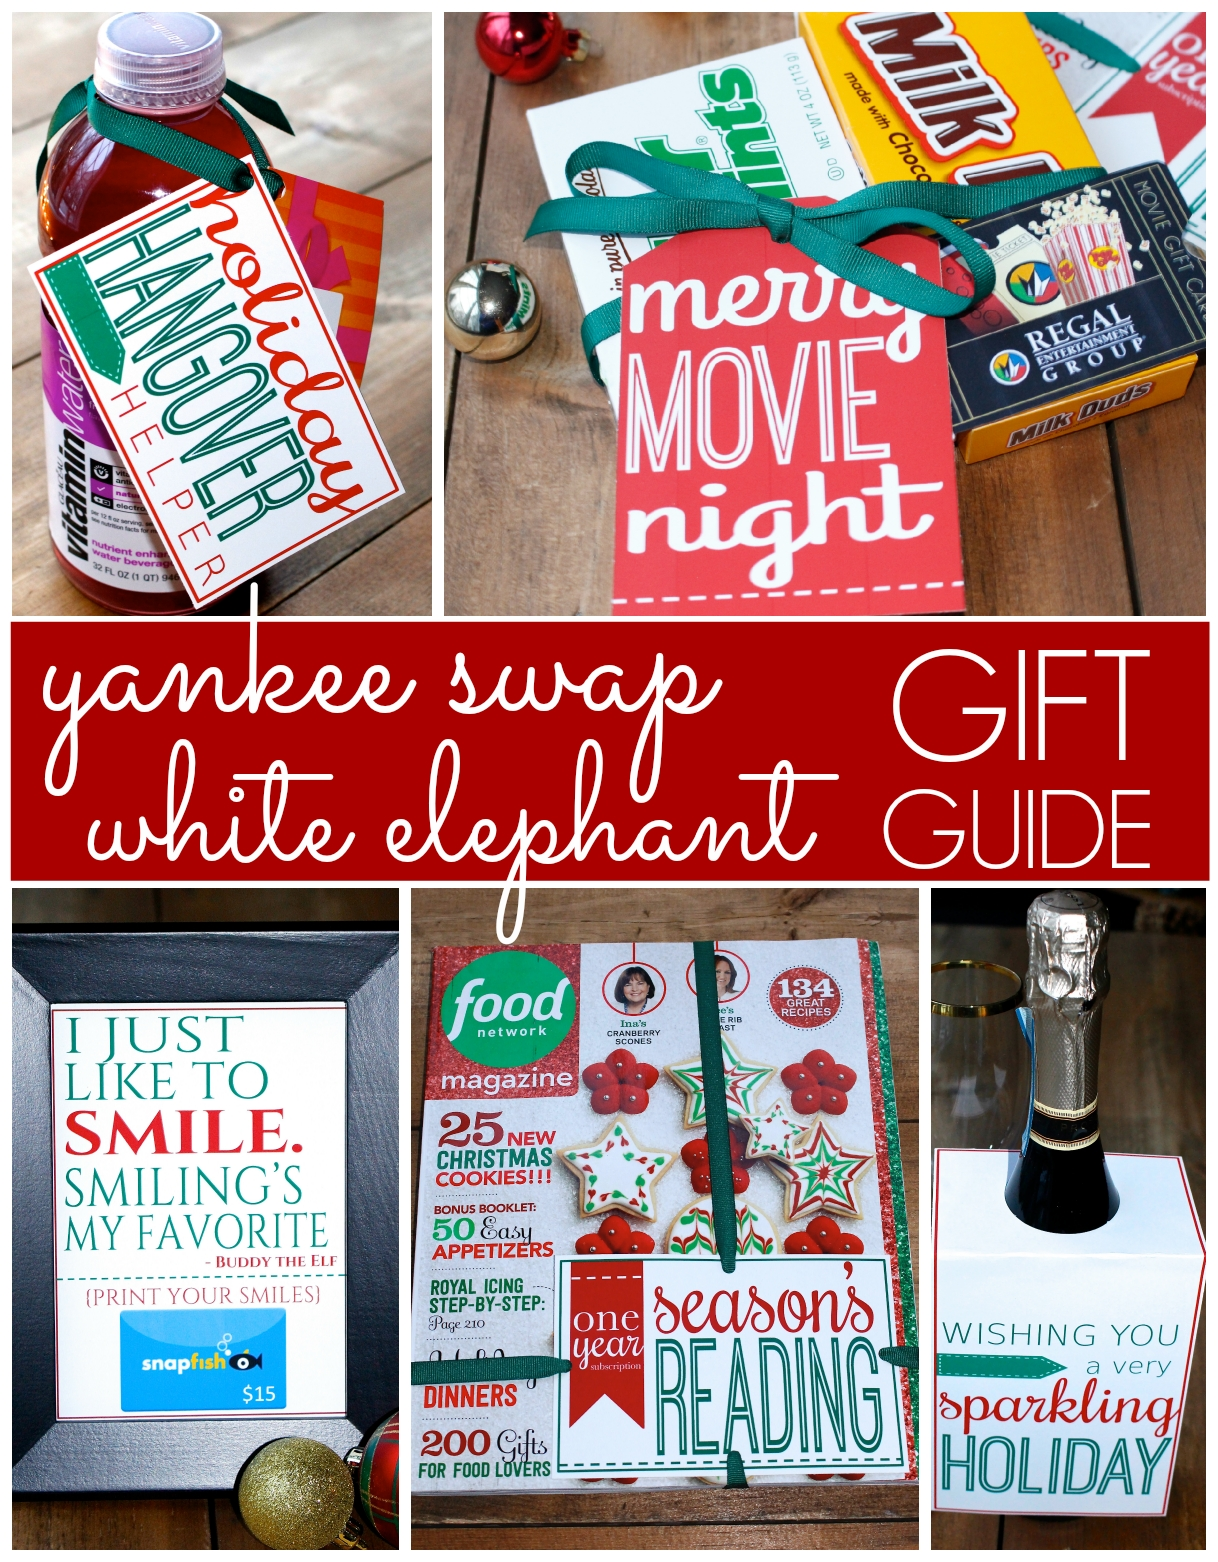 10 Pretty Ideas For White Elephant Gifts prepping parties yankee swap white elephant gifts christmas 2020